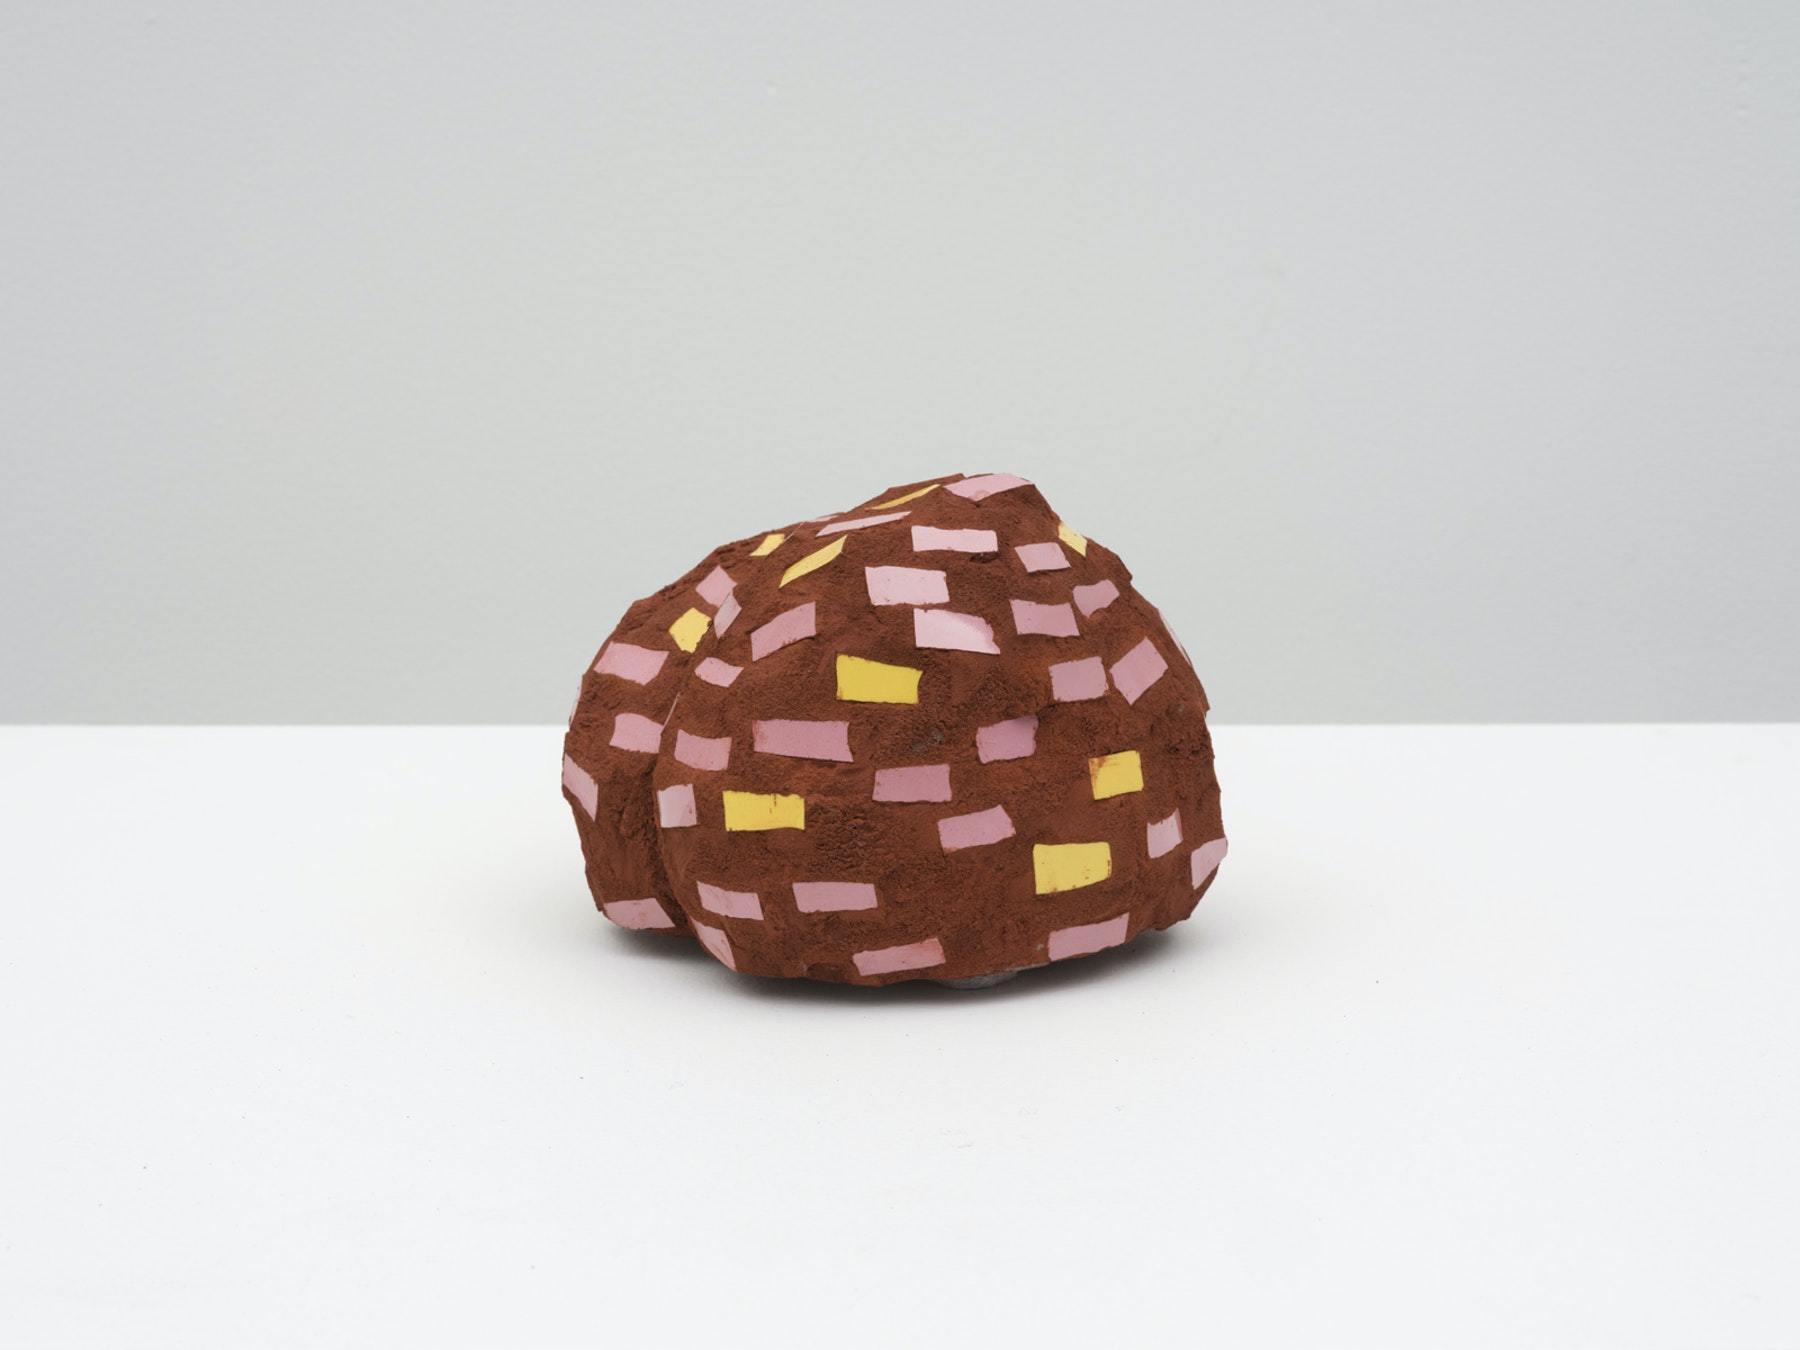 "Akina Cox ""Niki (Brown, Pink, Yellow),"" 2020 Glass, clay, grout, cement 4.5 x 5 x 5.25"" [HxWxD] (11.43 x 12.7 x 13.34 cm) Inventory #WS1048 Photo credit: Jeff Mclane"